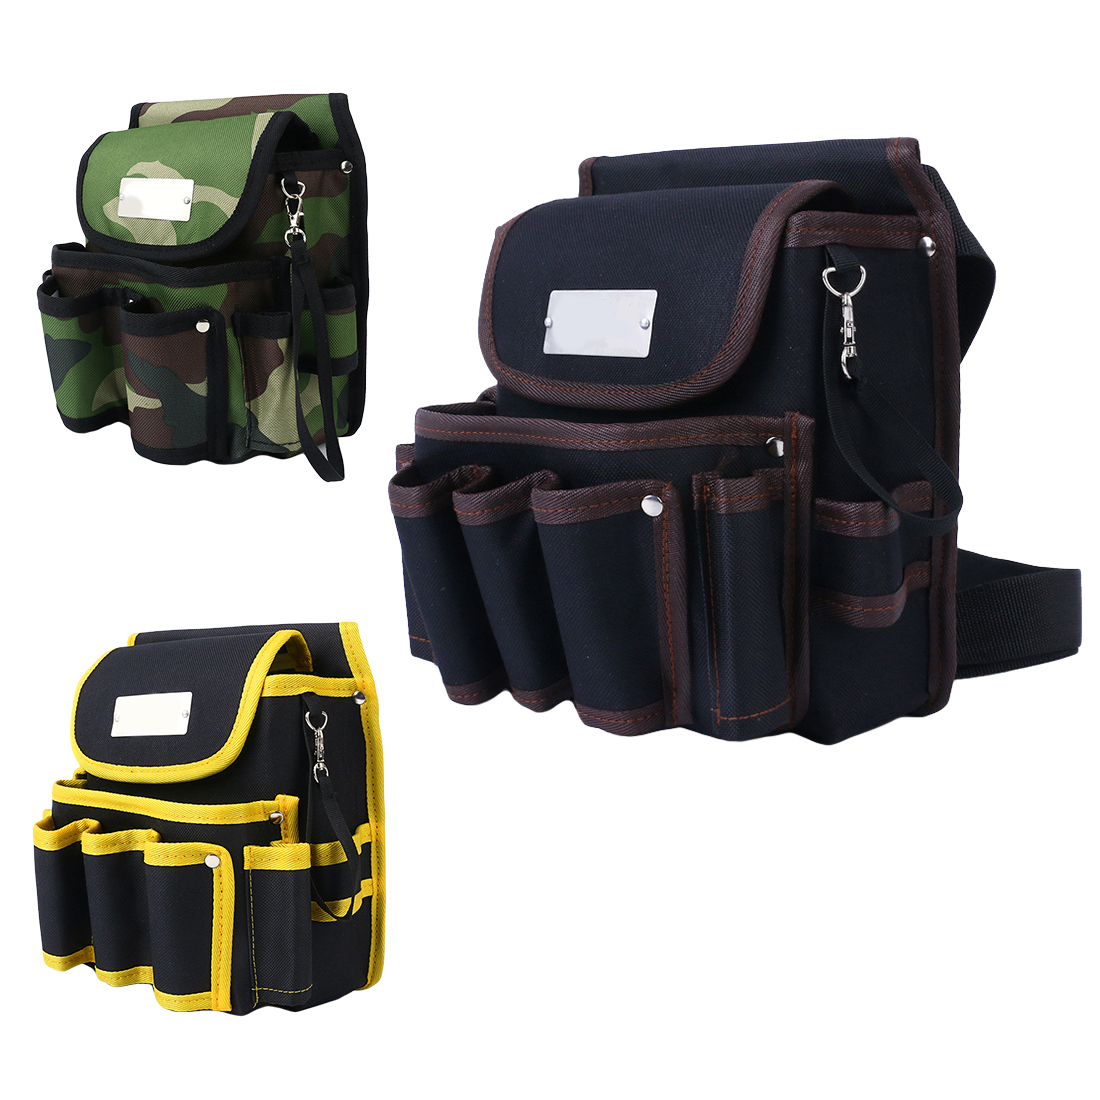 New Telecommunications Holder Electrician 600D Water Proof Cloth Rivet Fixed Tool Bag Belt Utility Kit Pocket Pouch